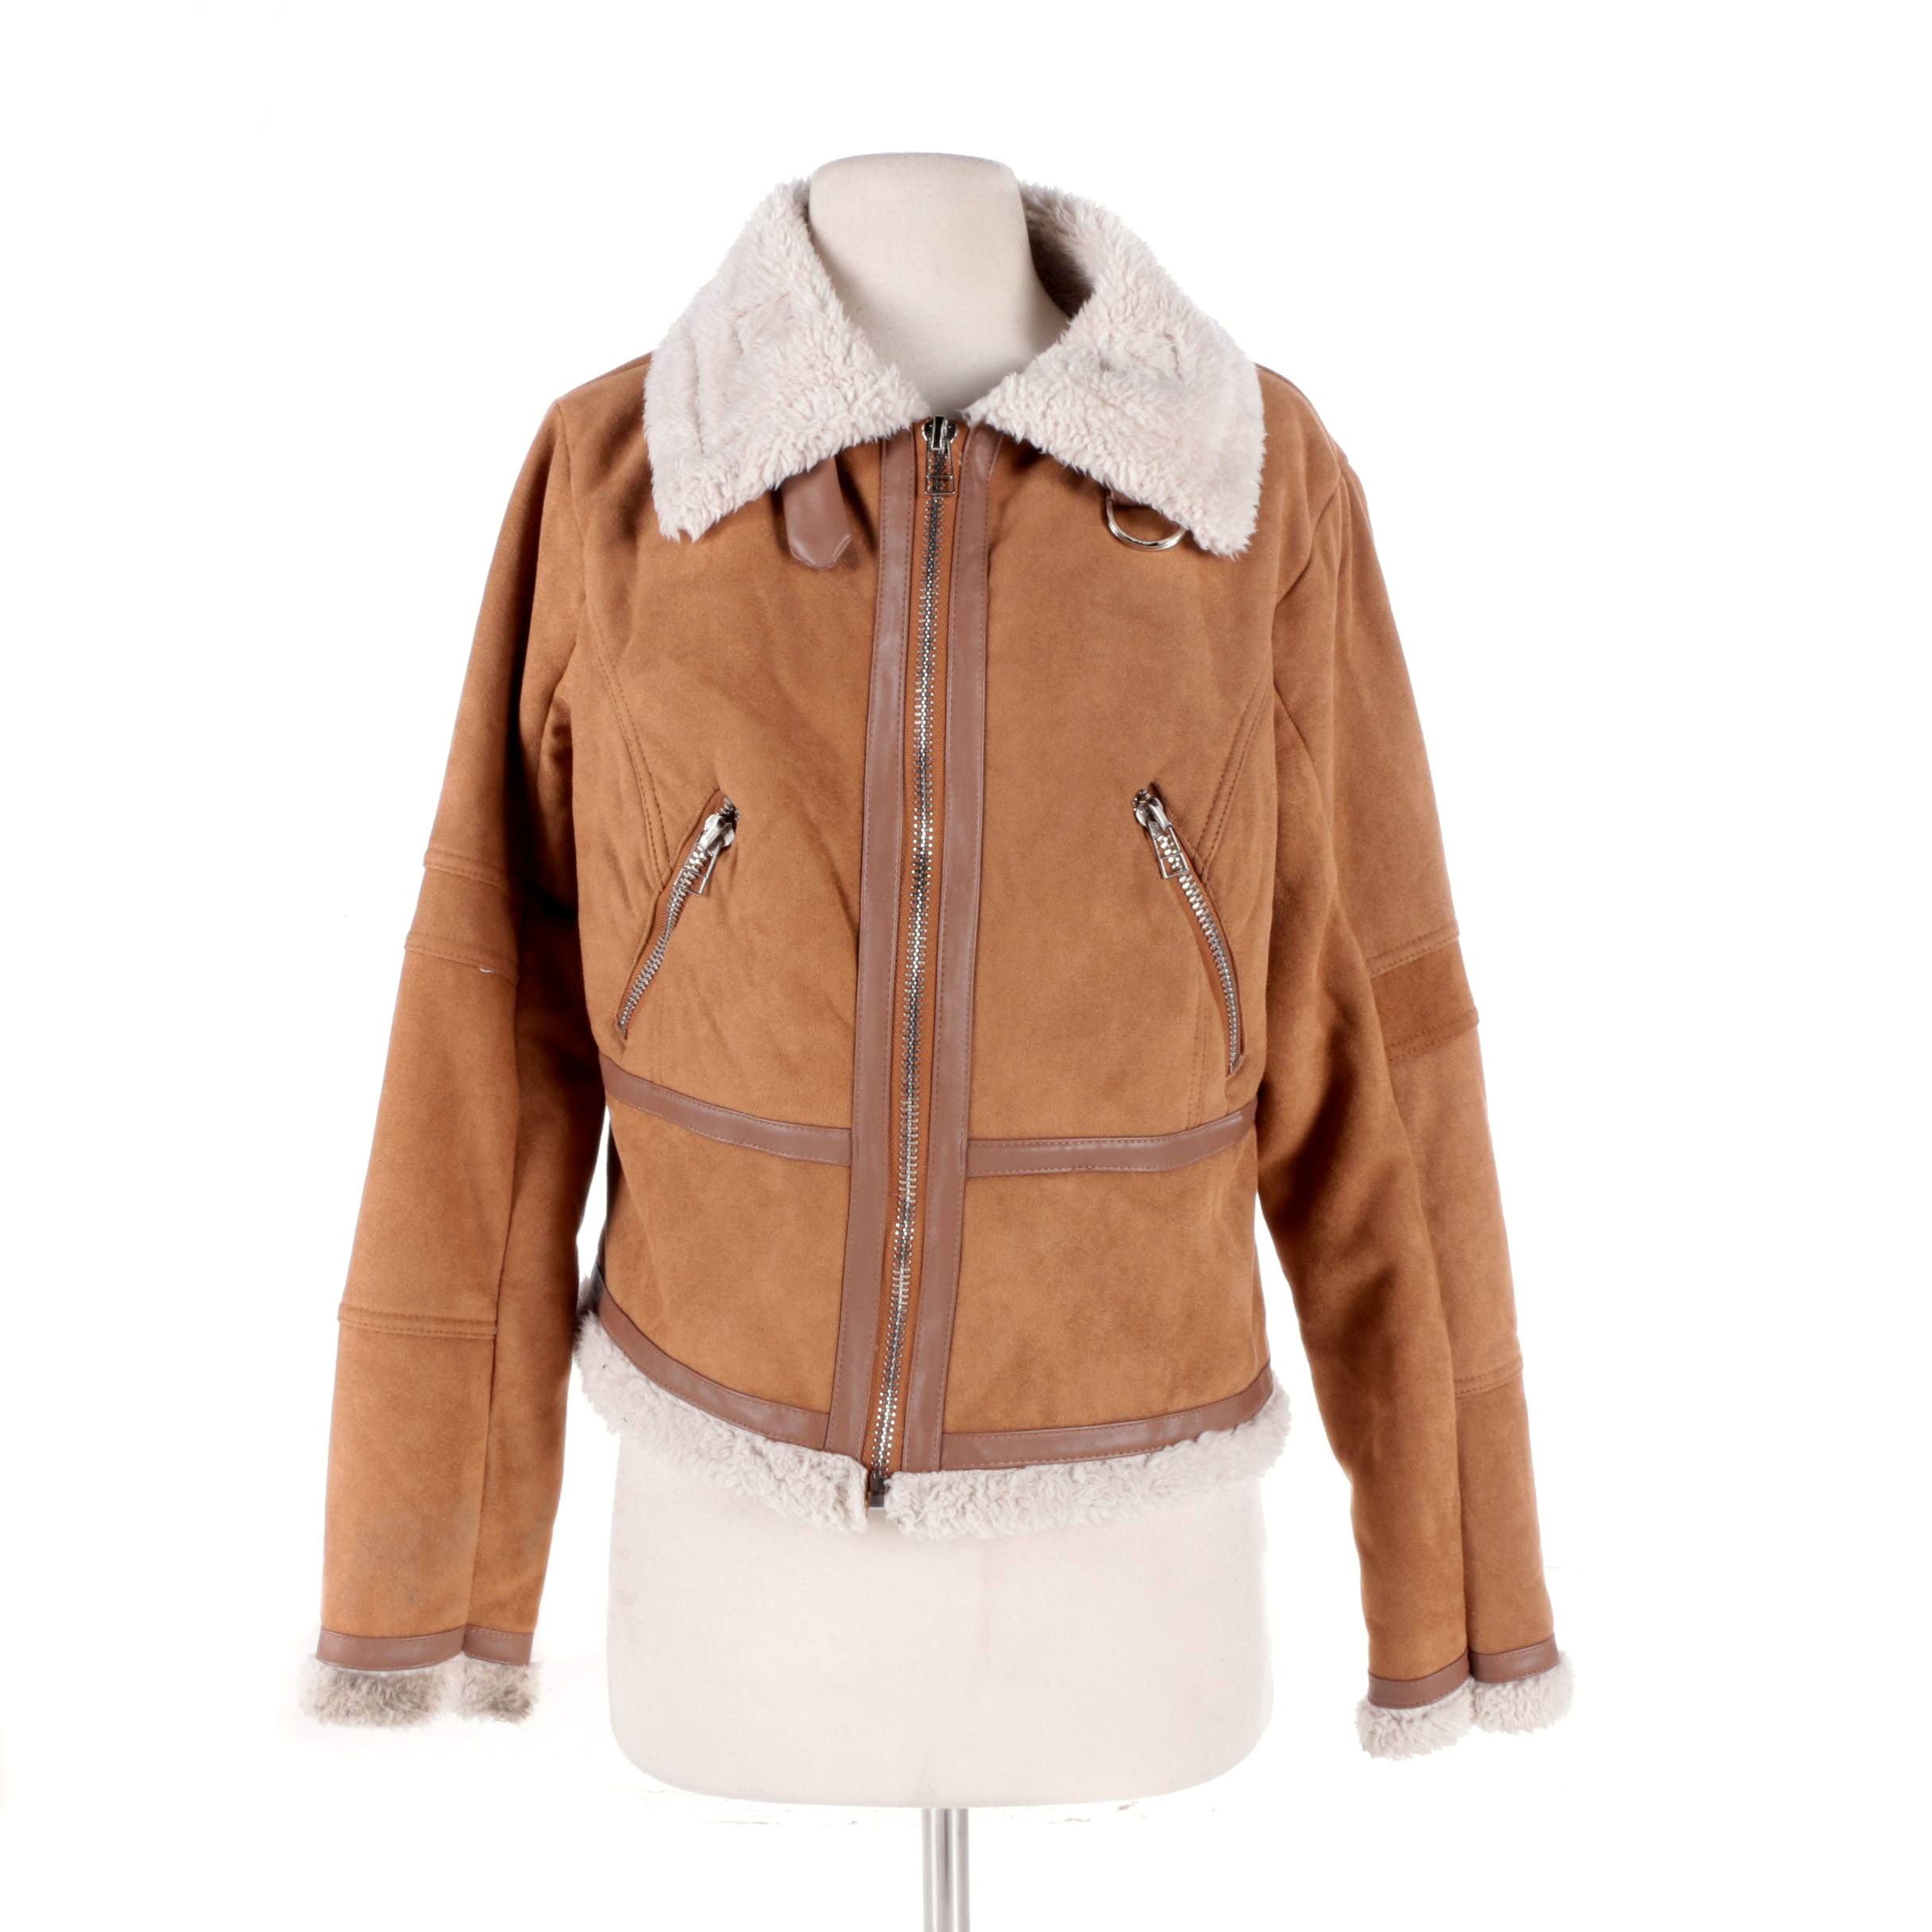 Women's HYFVE Faux Suede and Shearling Bomber Jacket